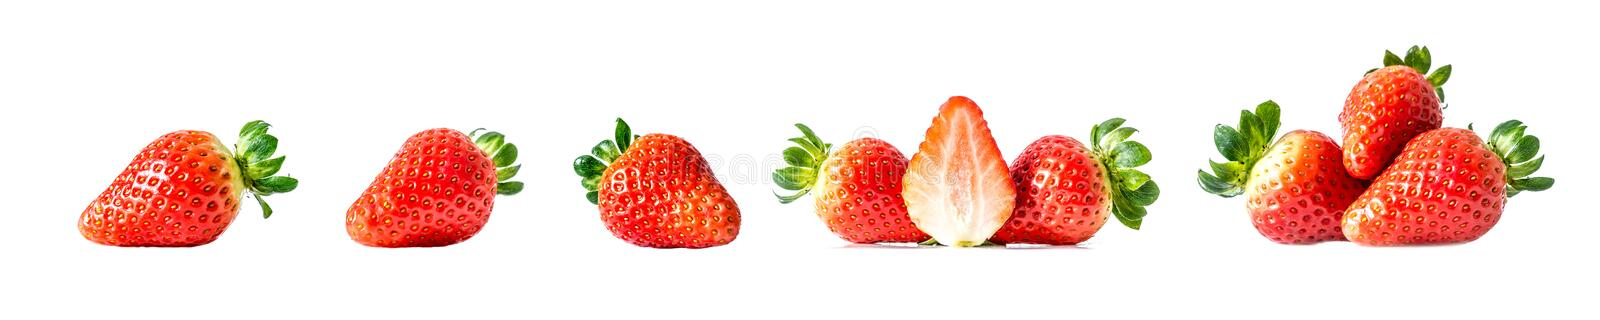 Set of fresh ripe red strawberries with green leaves close-up, isolated on a white background. A large size photo of a collection stock photography